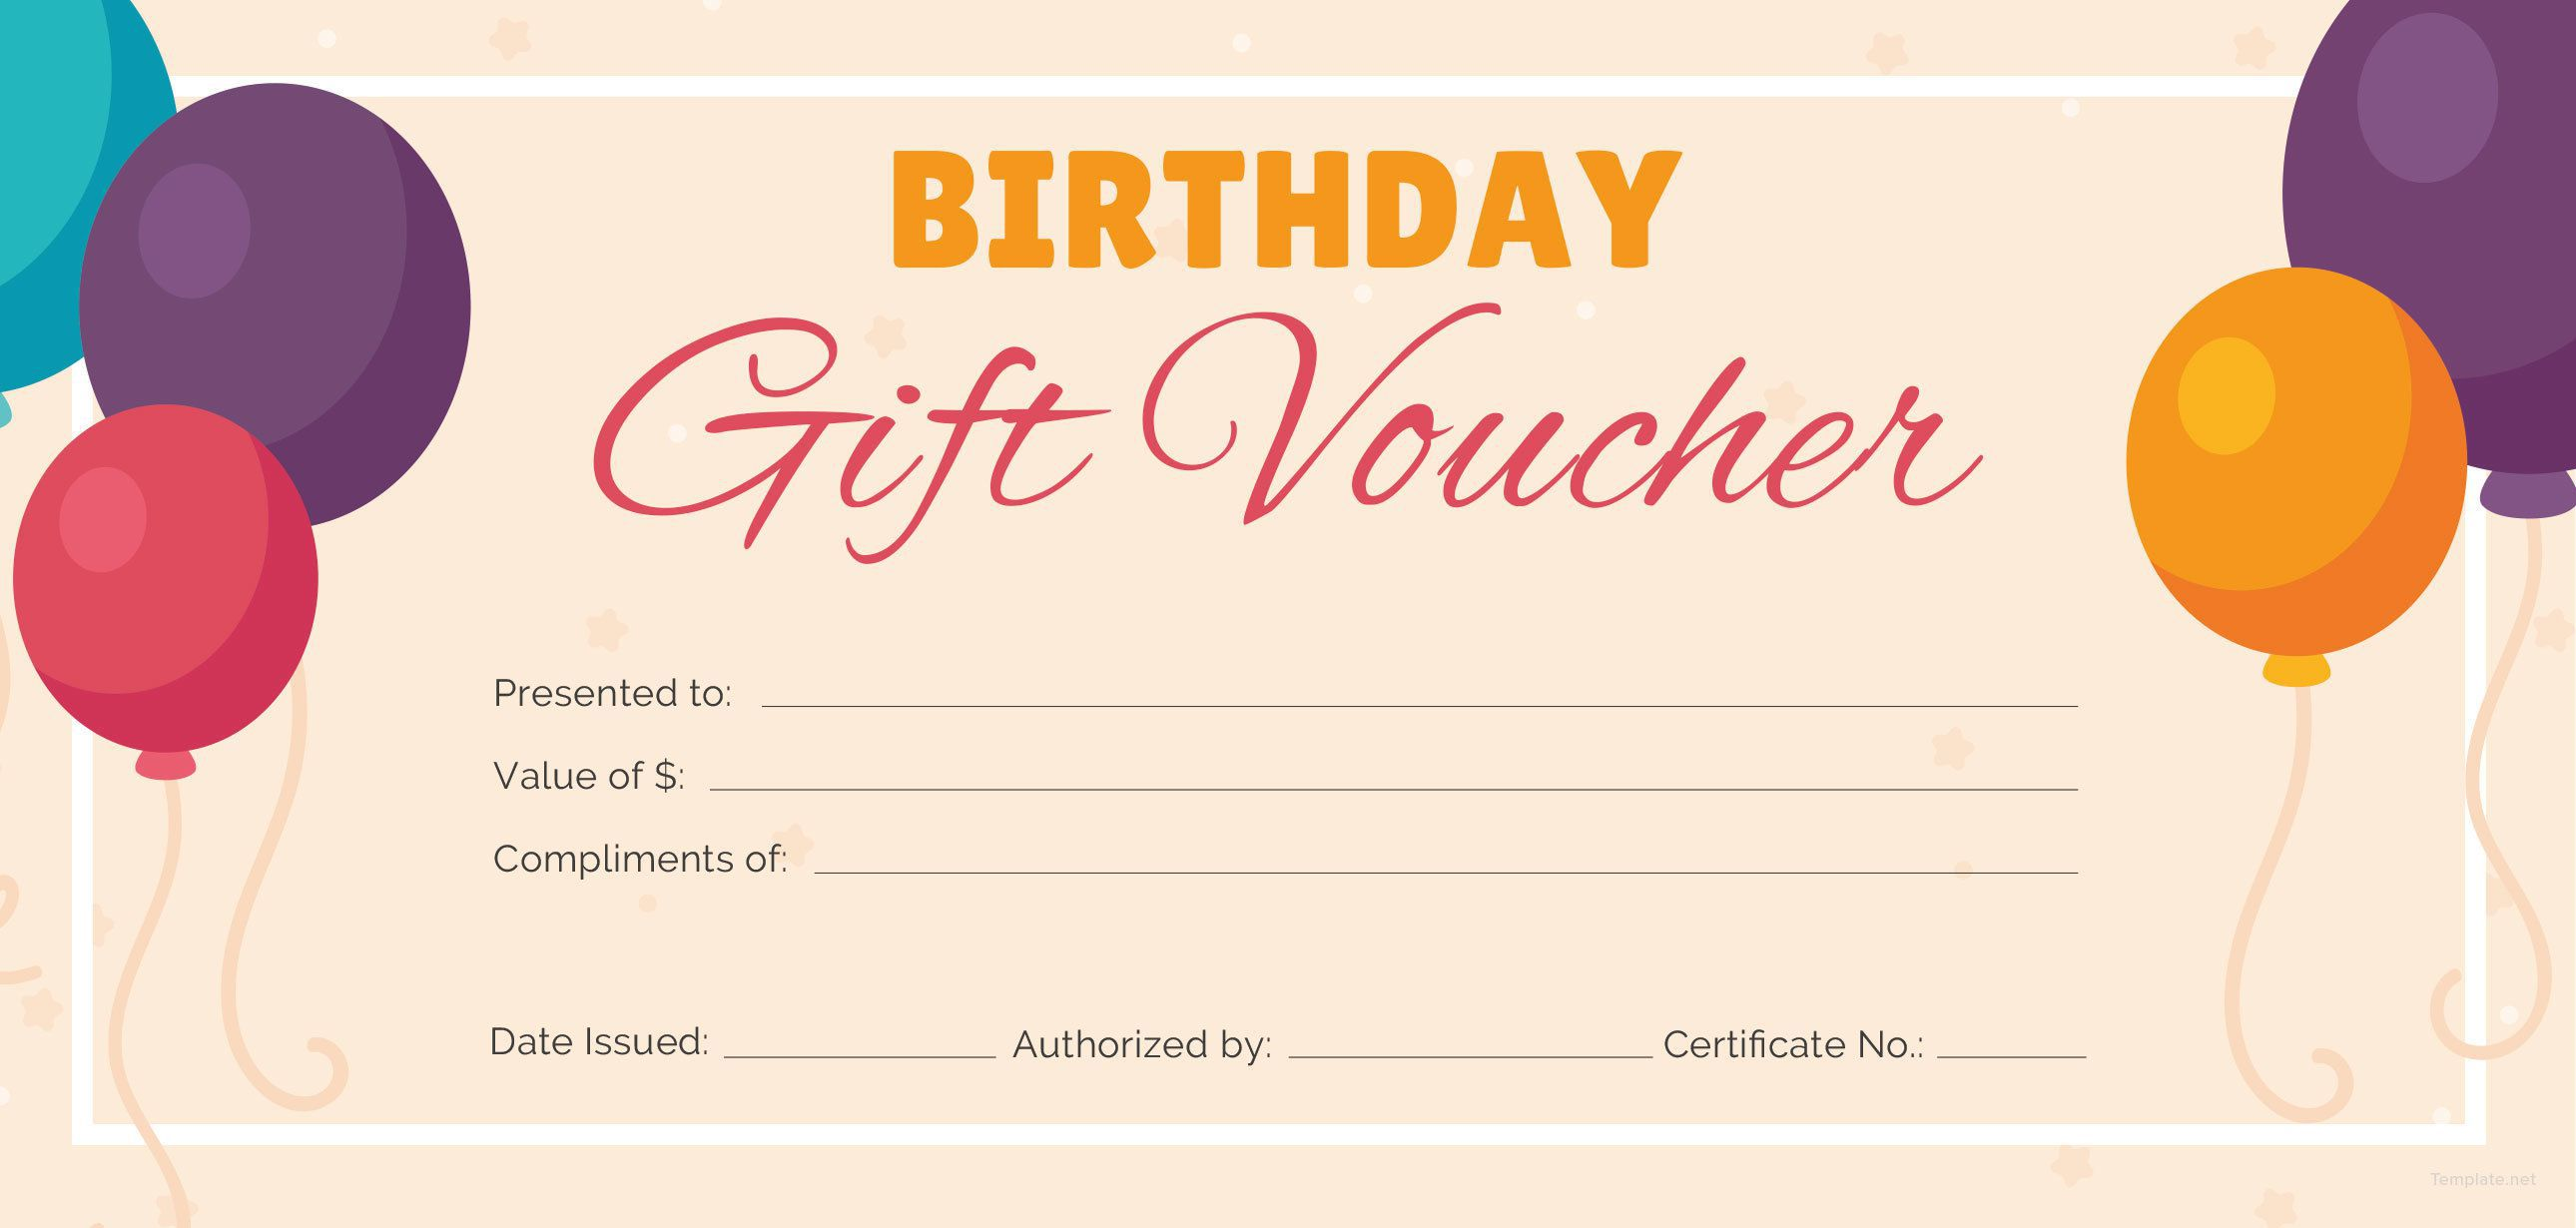 003 Beautiful Free Printable Template For Gift Certificate Highest Clarity  VoucherFull